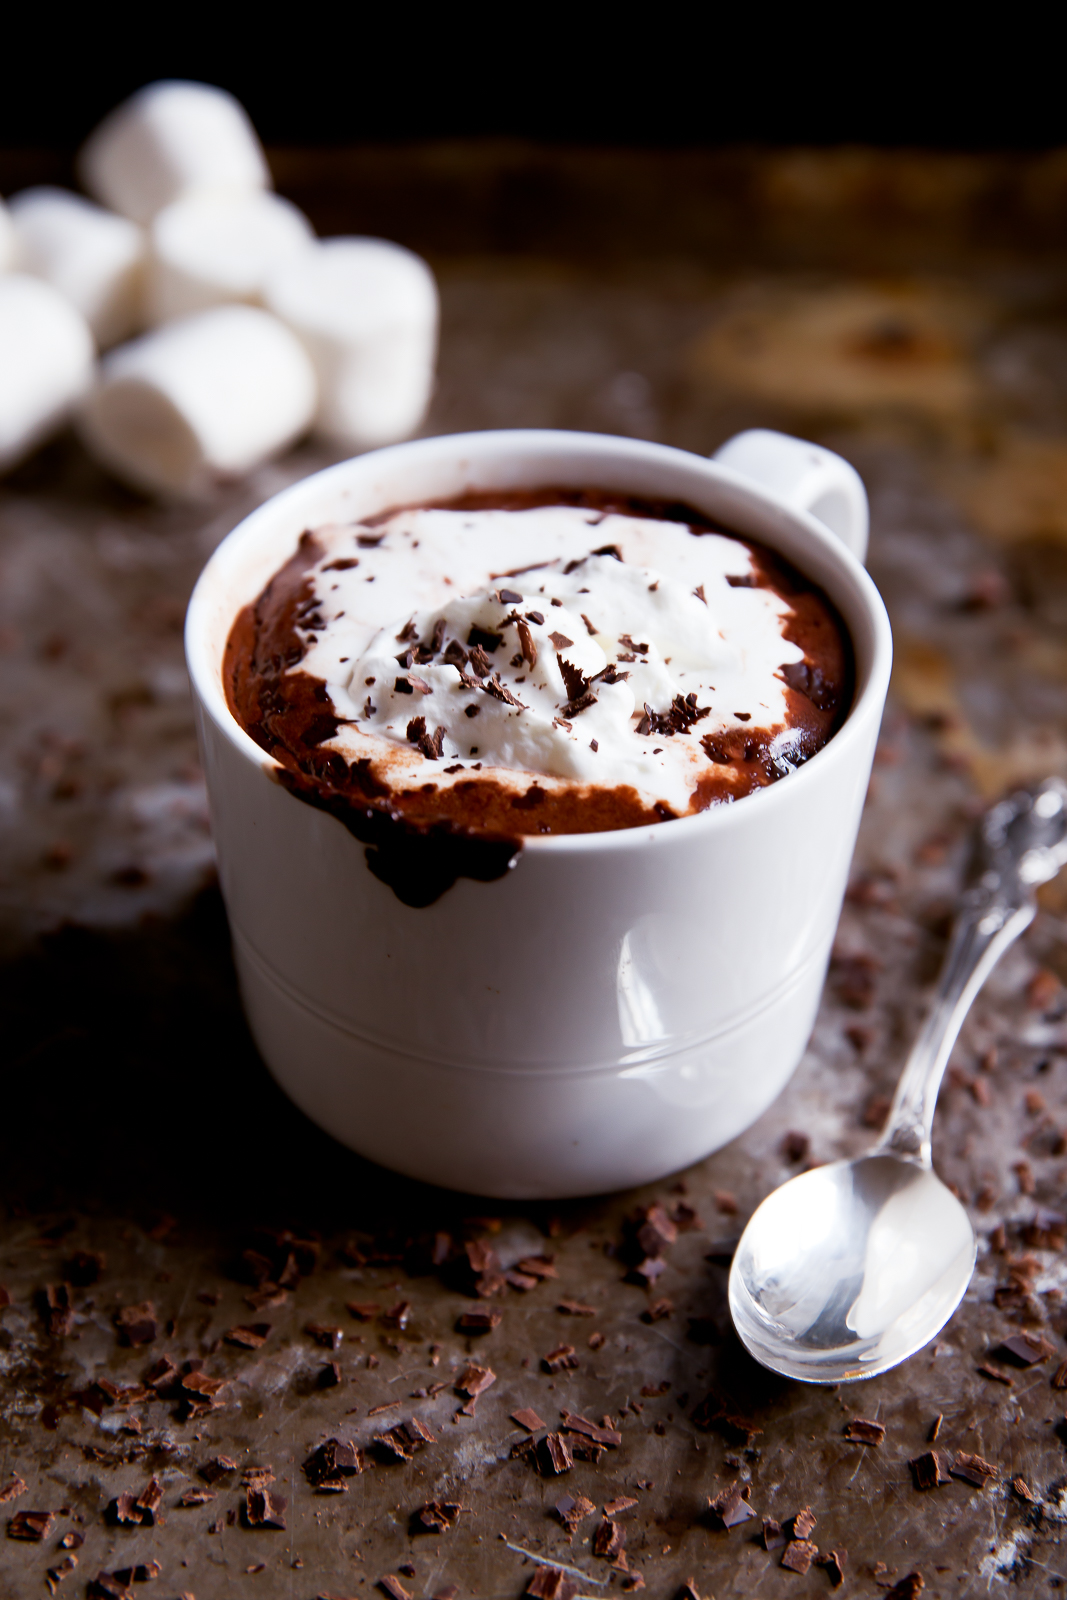 Hot chocolate giveaways